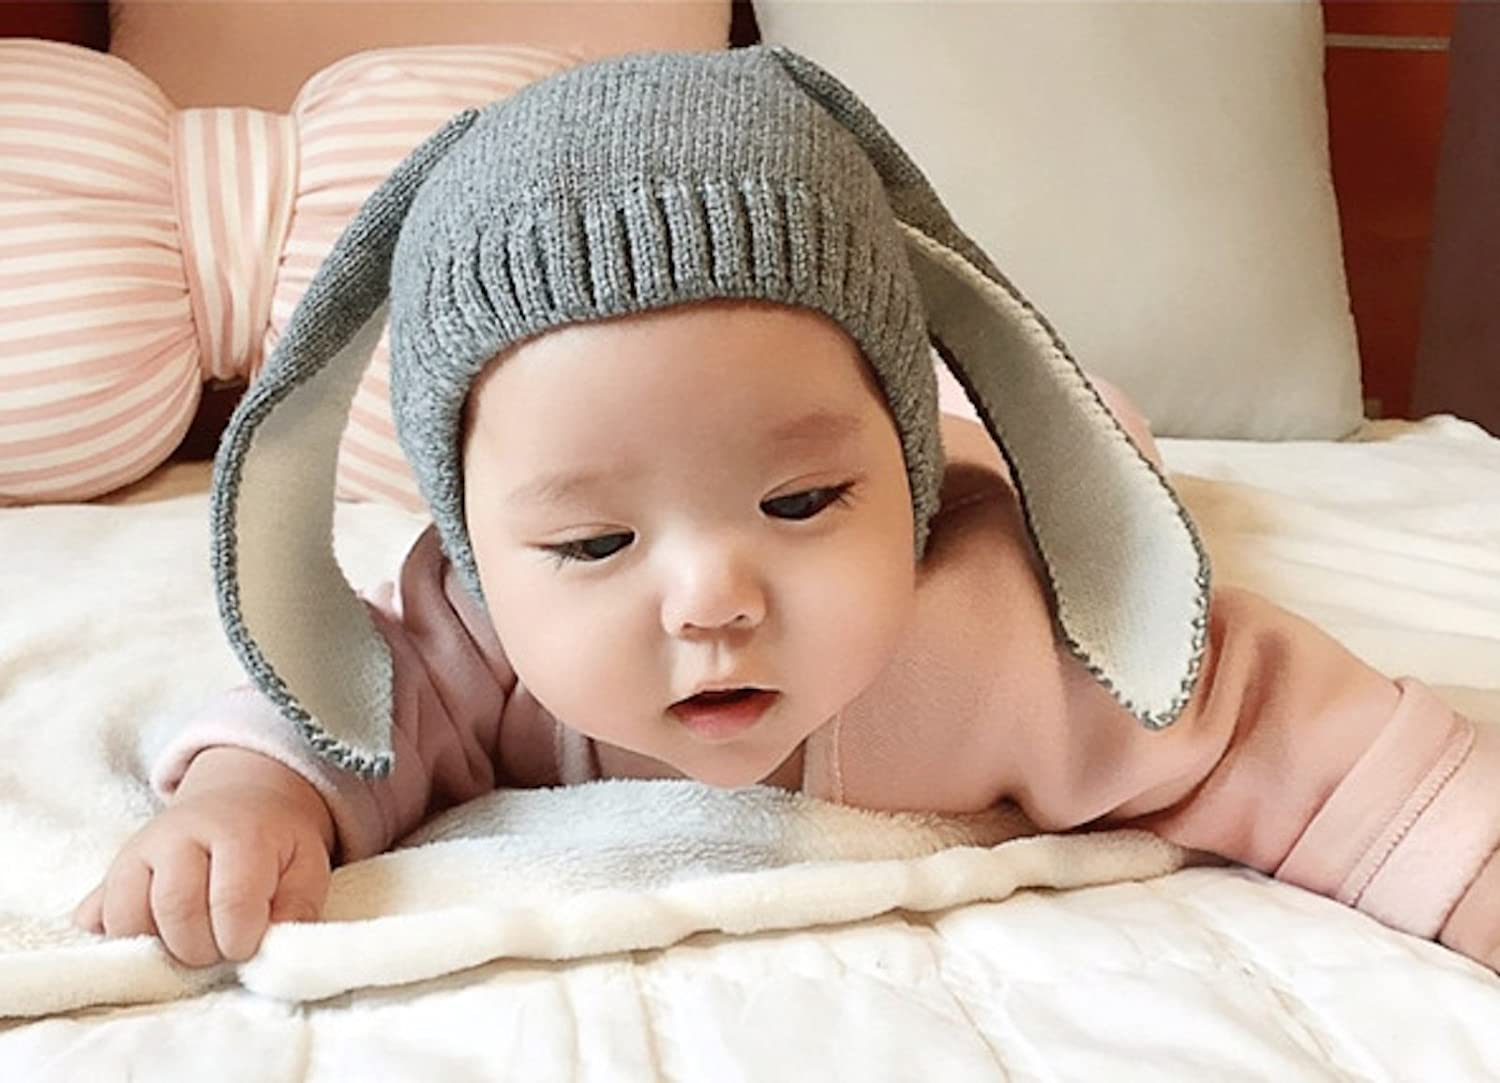 WSLCN Unisex Baby Toddler Kids Thickening Knitted Rabbit Ear Beanie Hat Bunny Ear Cute Cap Winter Warm for 3-18 Months Pink